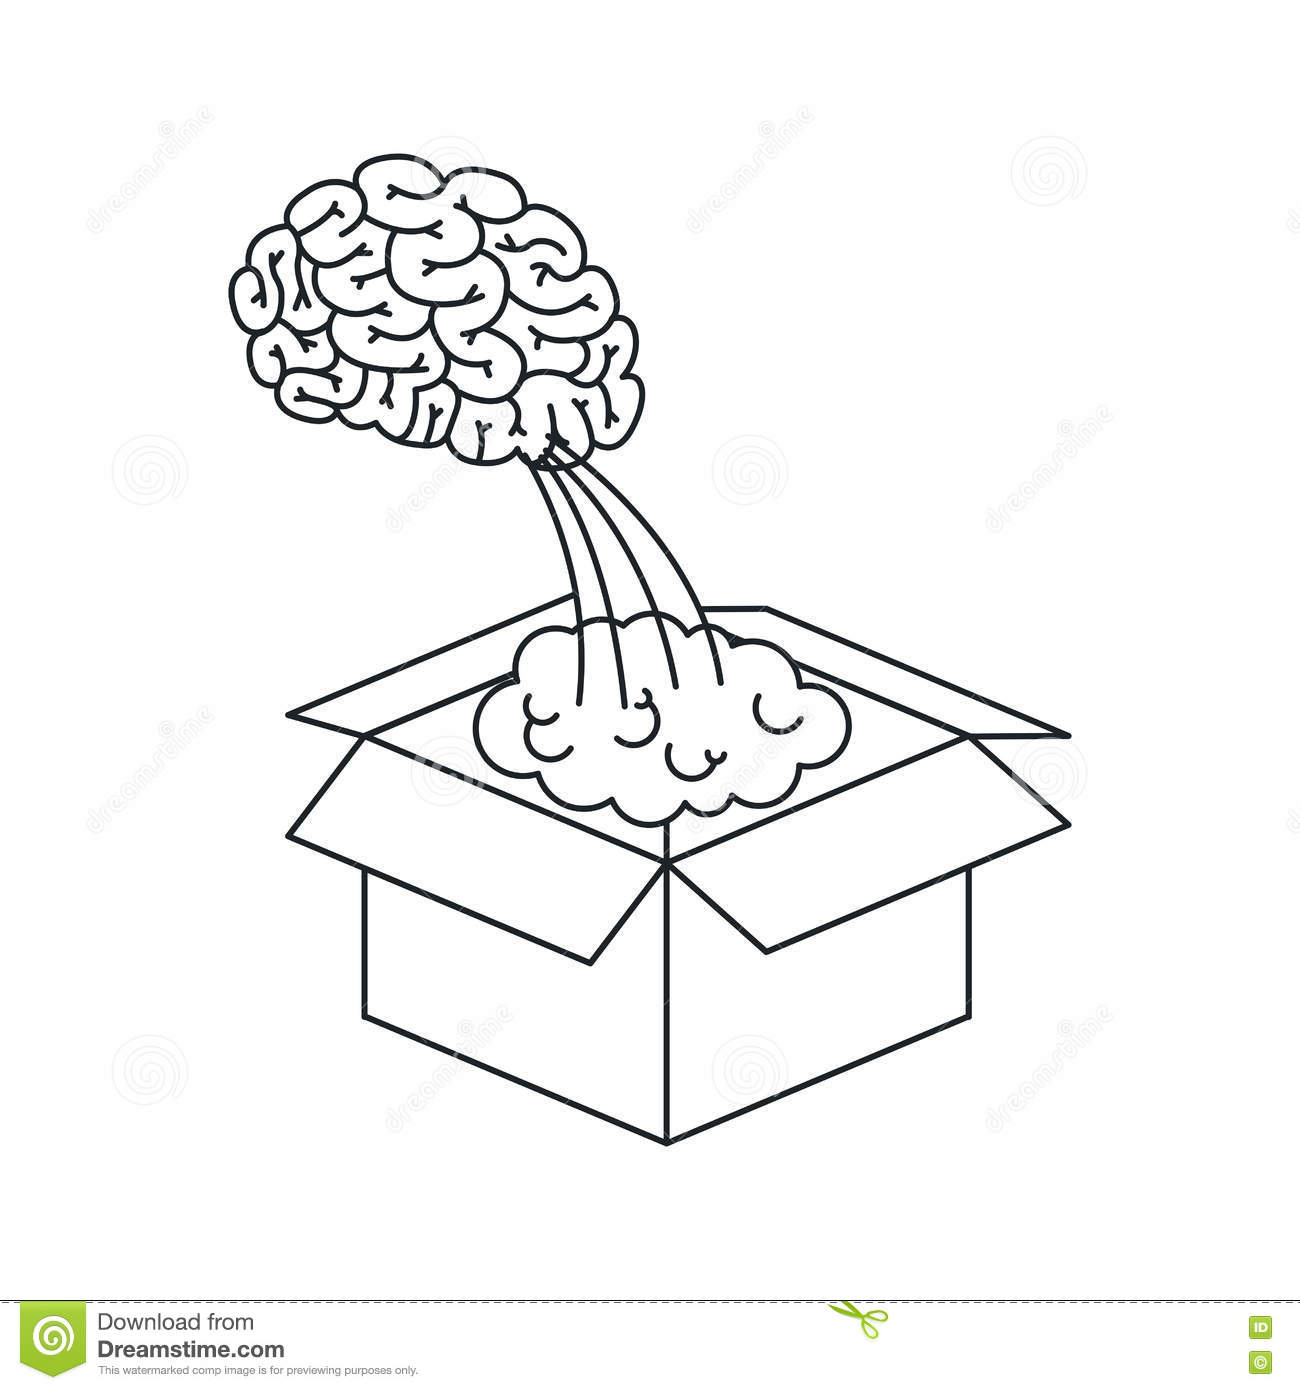 Isolated big idea draw design stock vector illustration of brain download isolated big idea draw design stock vector illustration of brain invention 80614762 ccuart Images